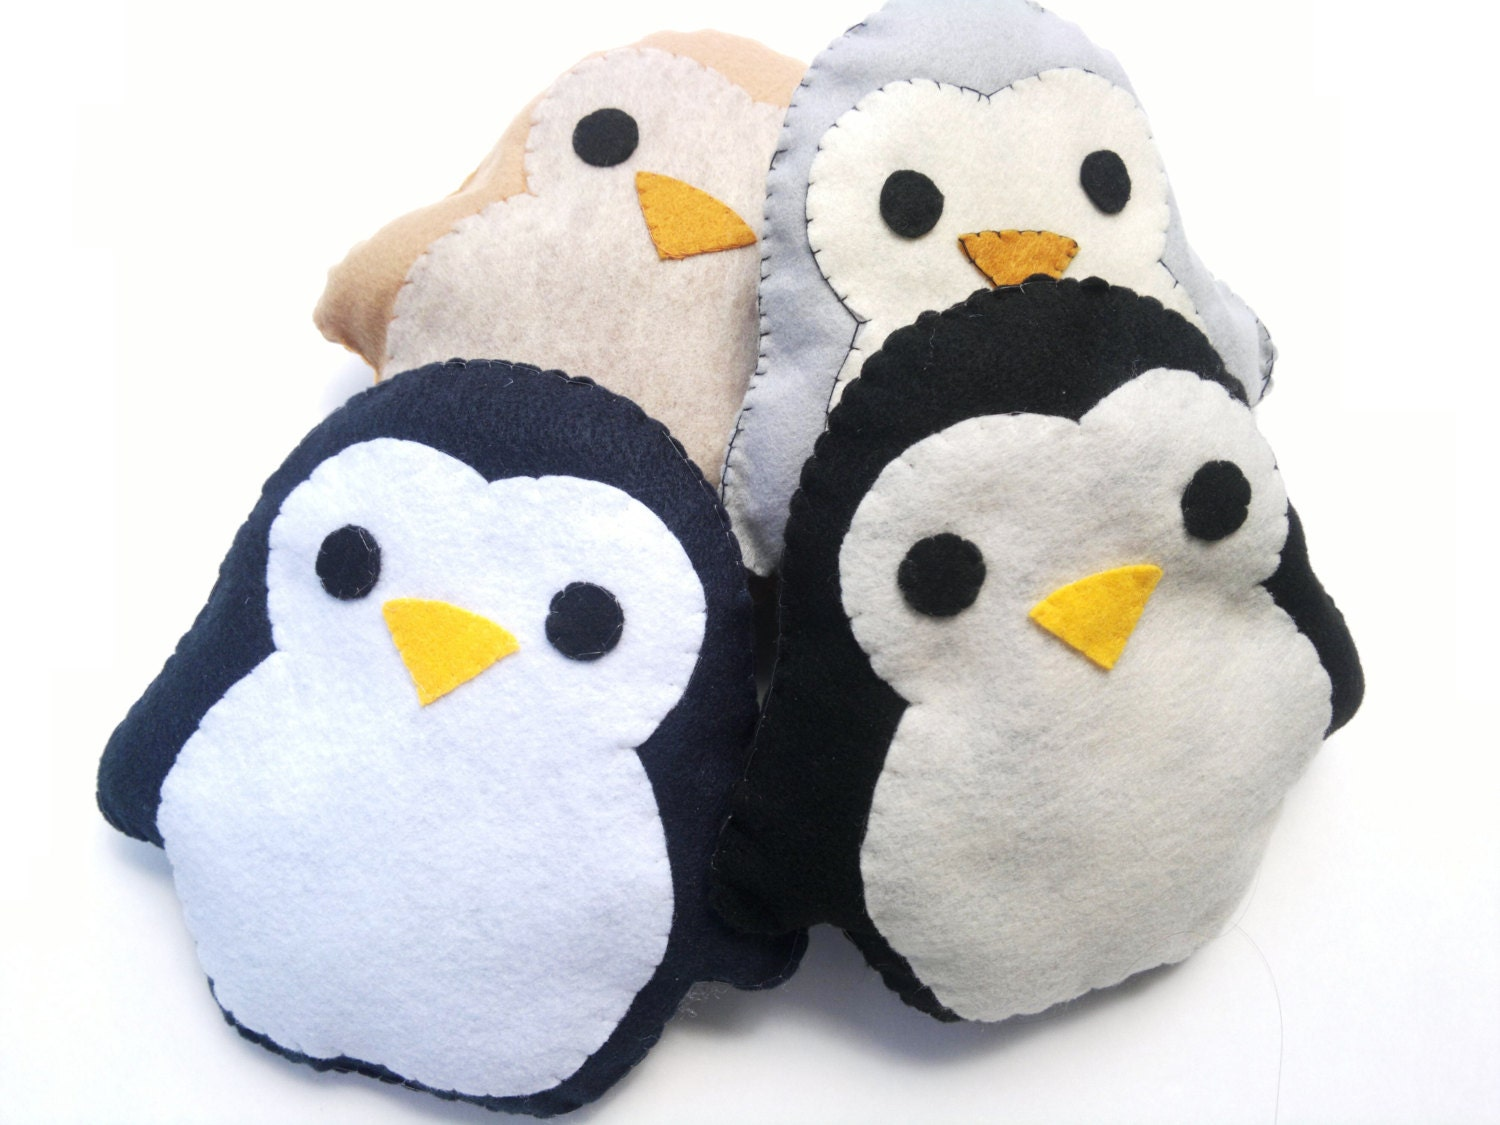 Animal Pillows : Cute Handmade and Handsewn Kawaii Penguin by WhimsicaIWonderIand